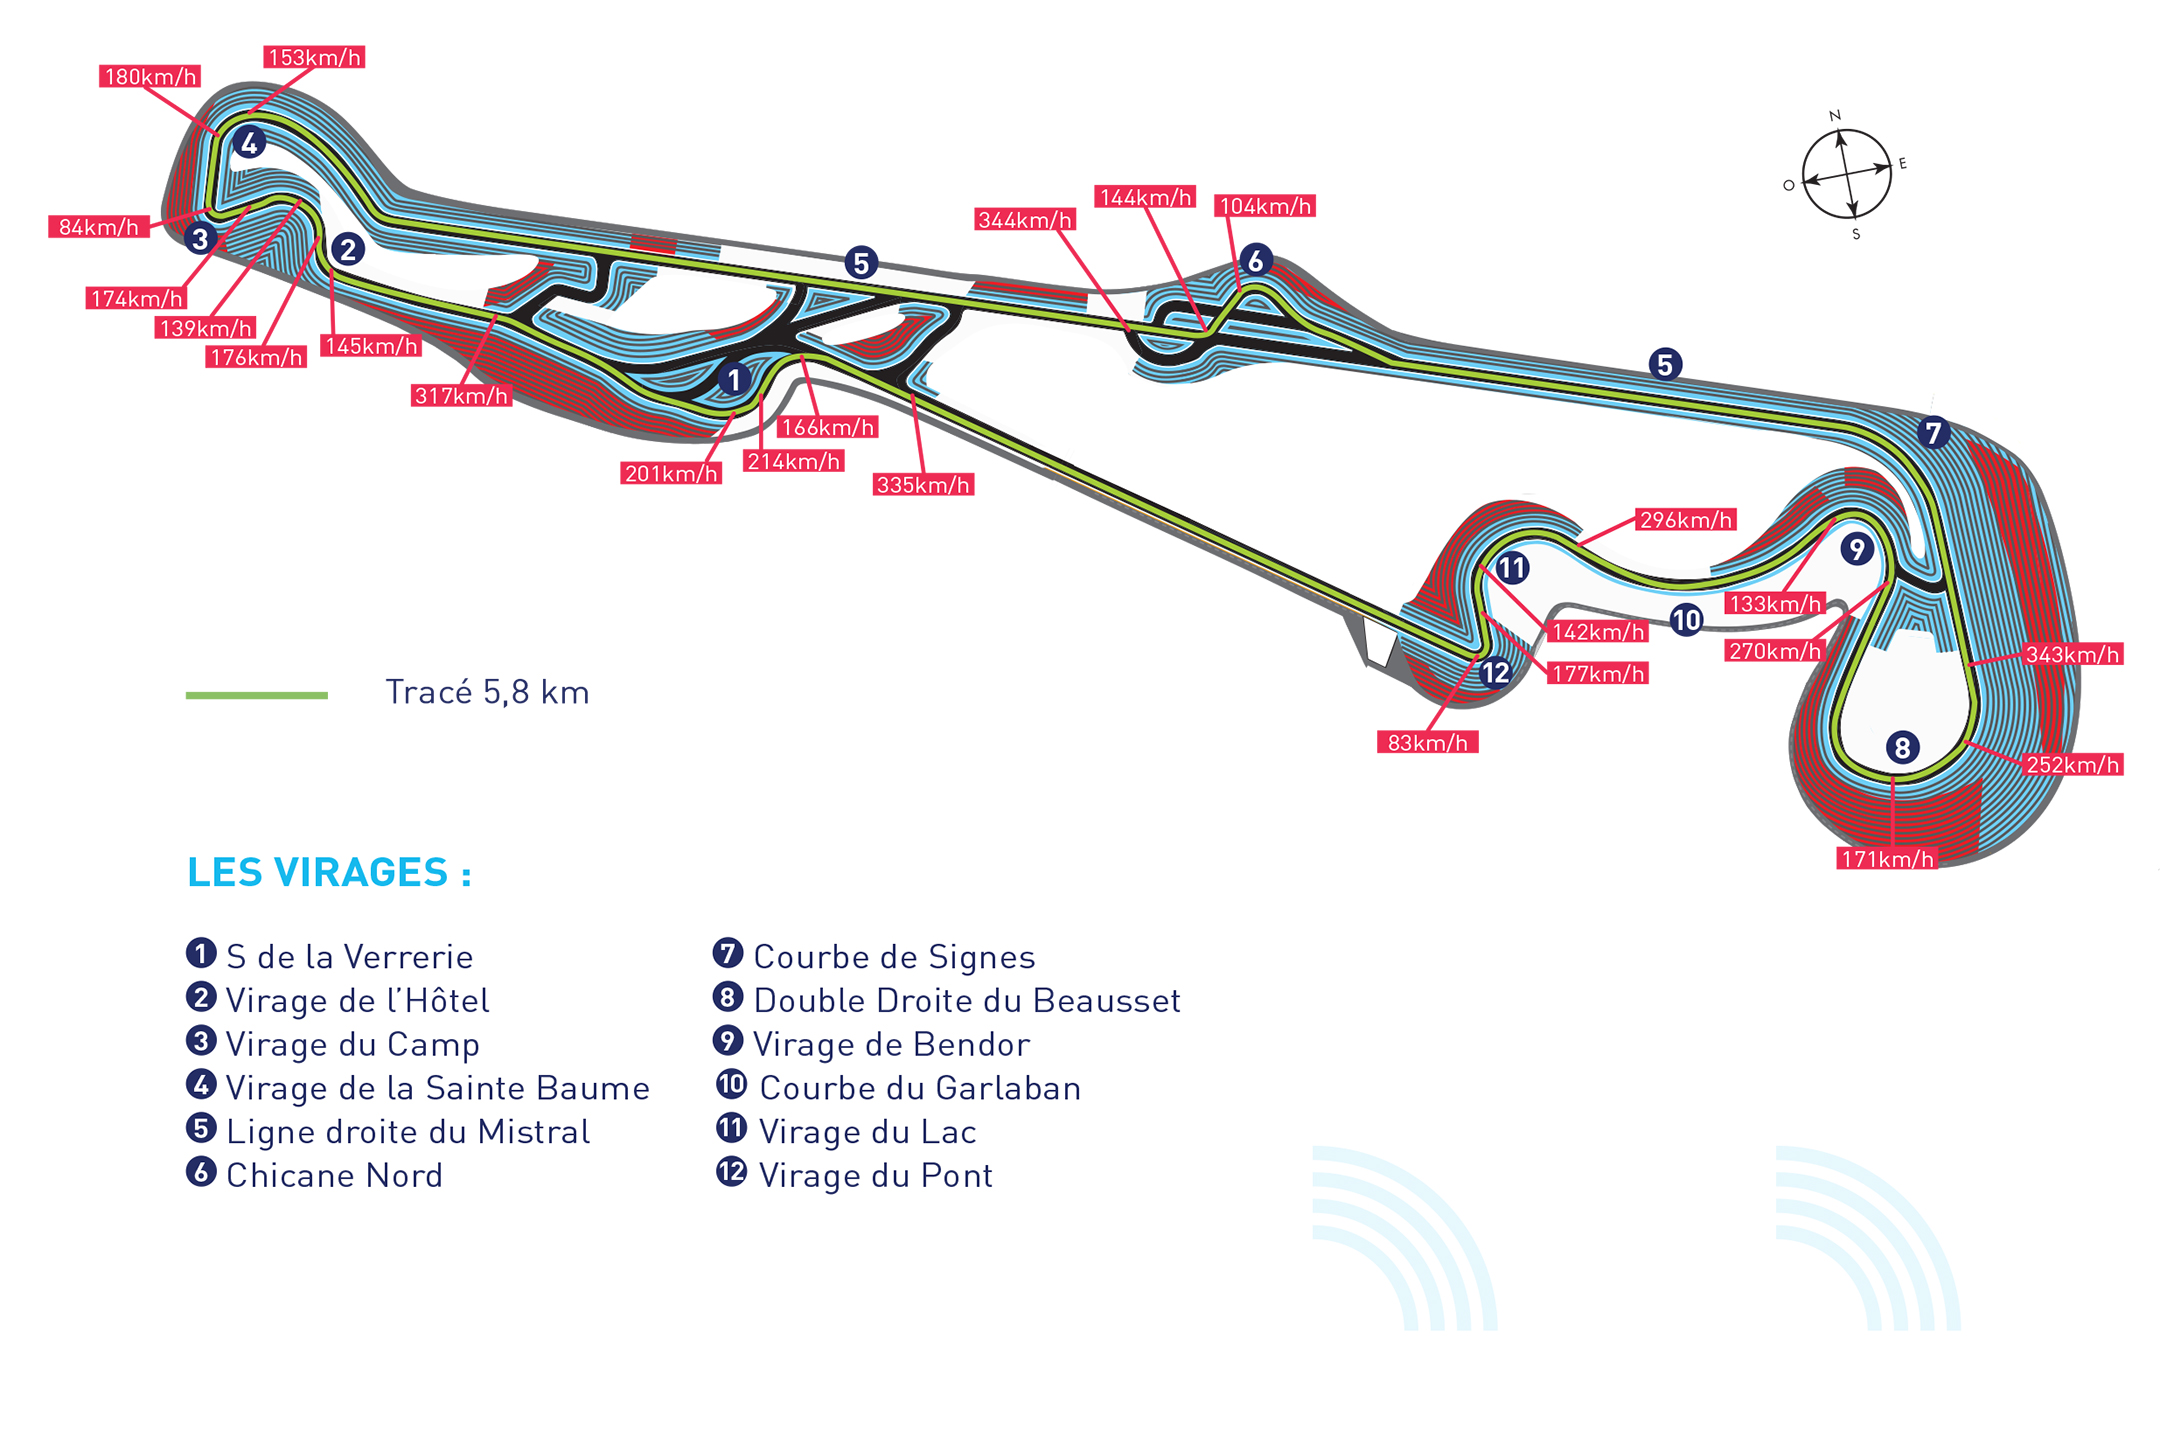 F1 Grand Prix de France - Le Castellet - 2018 - circuit Paul Ricard en configuration F1